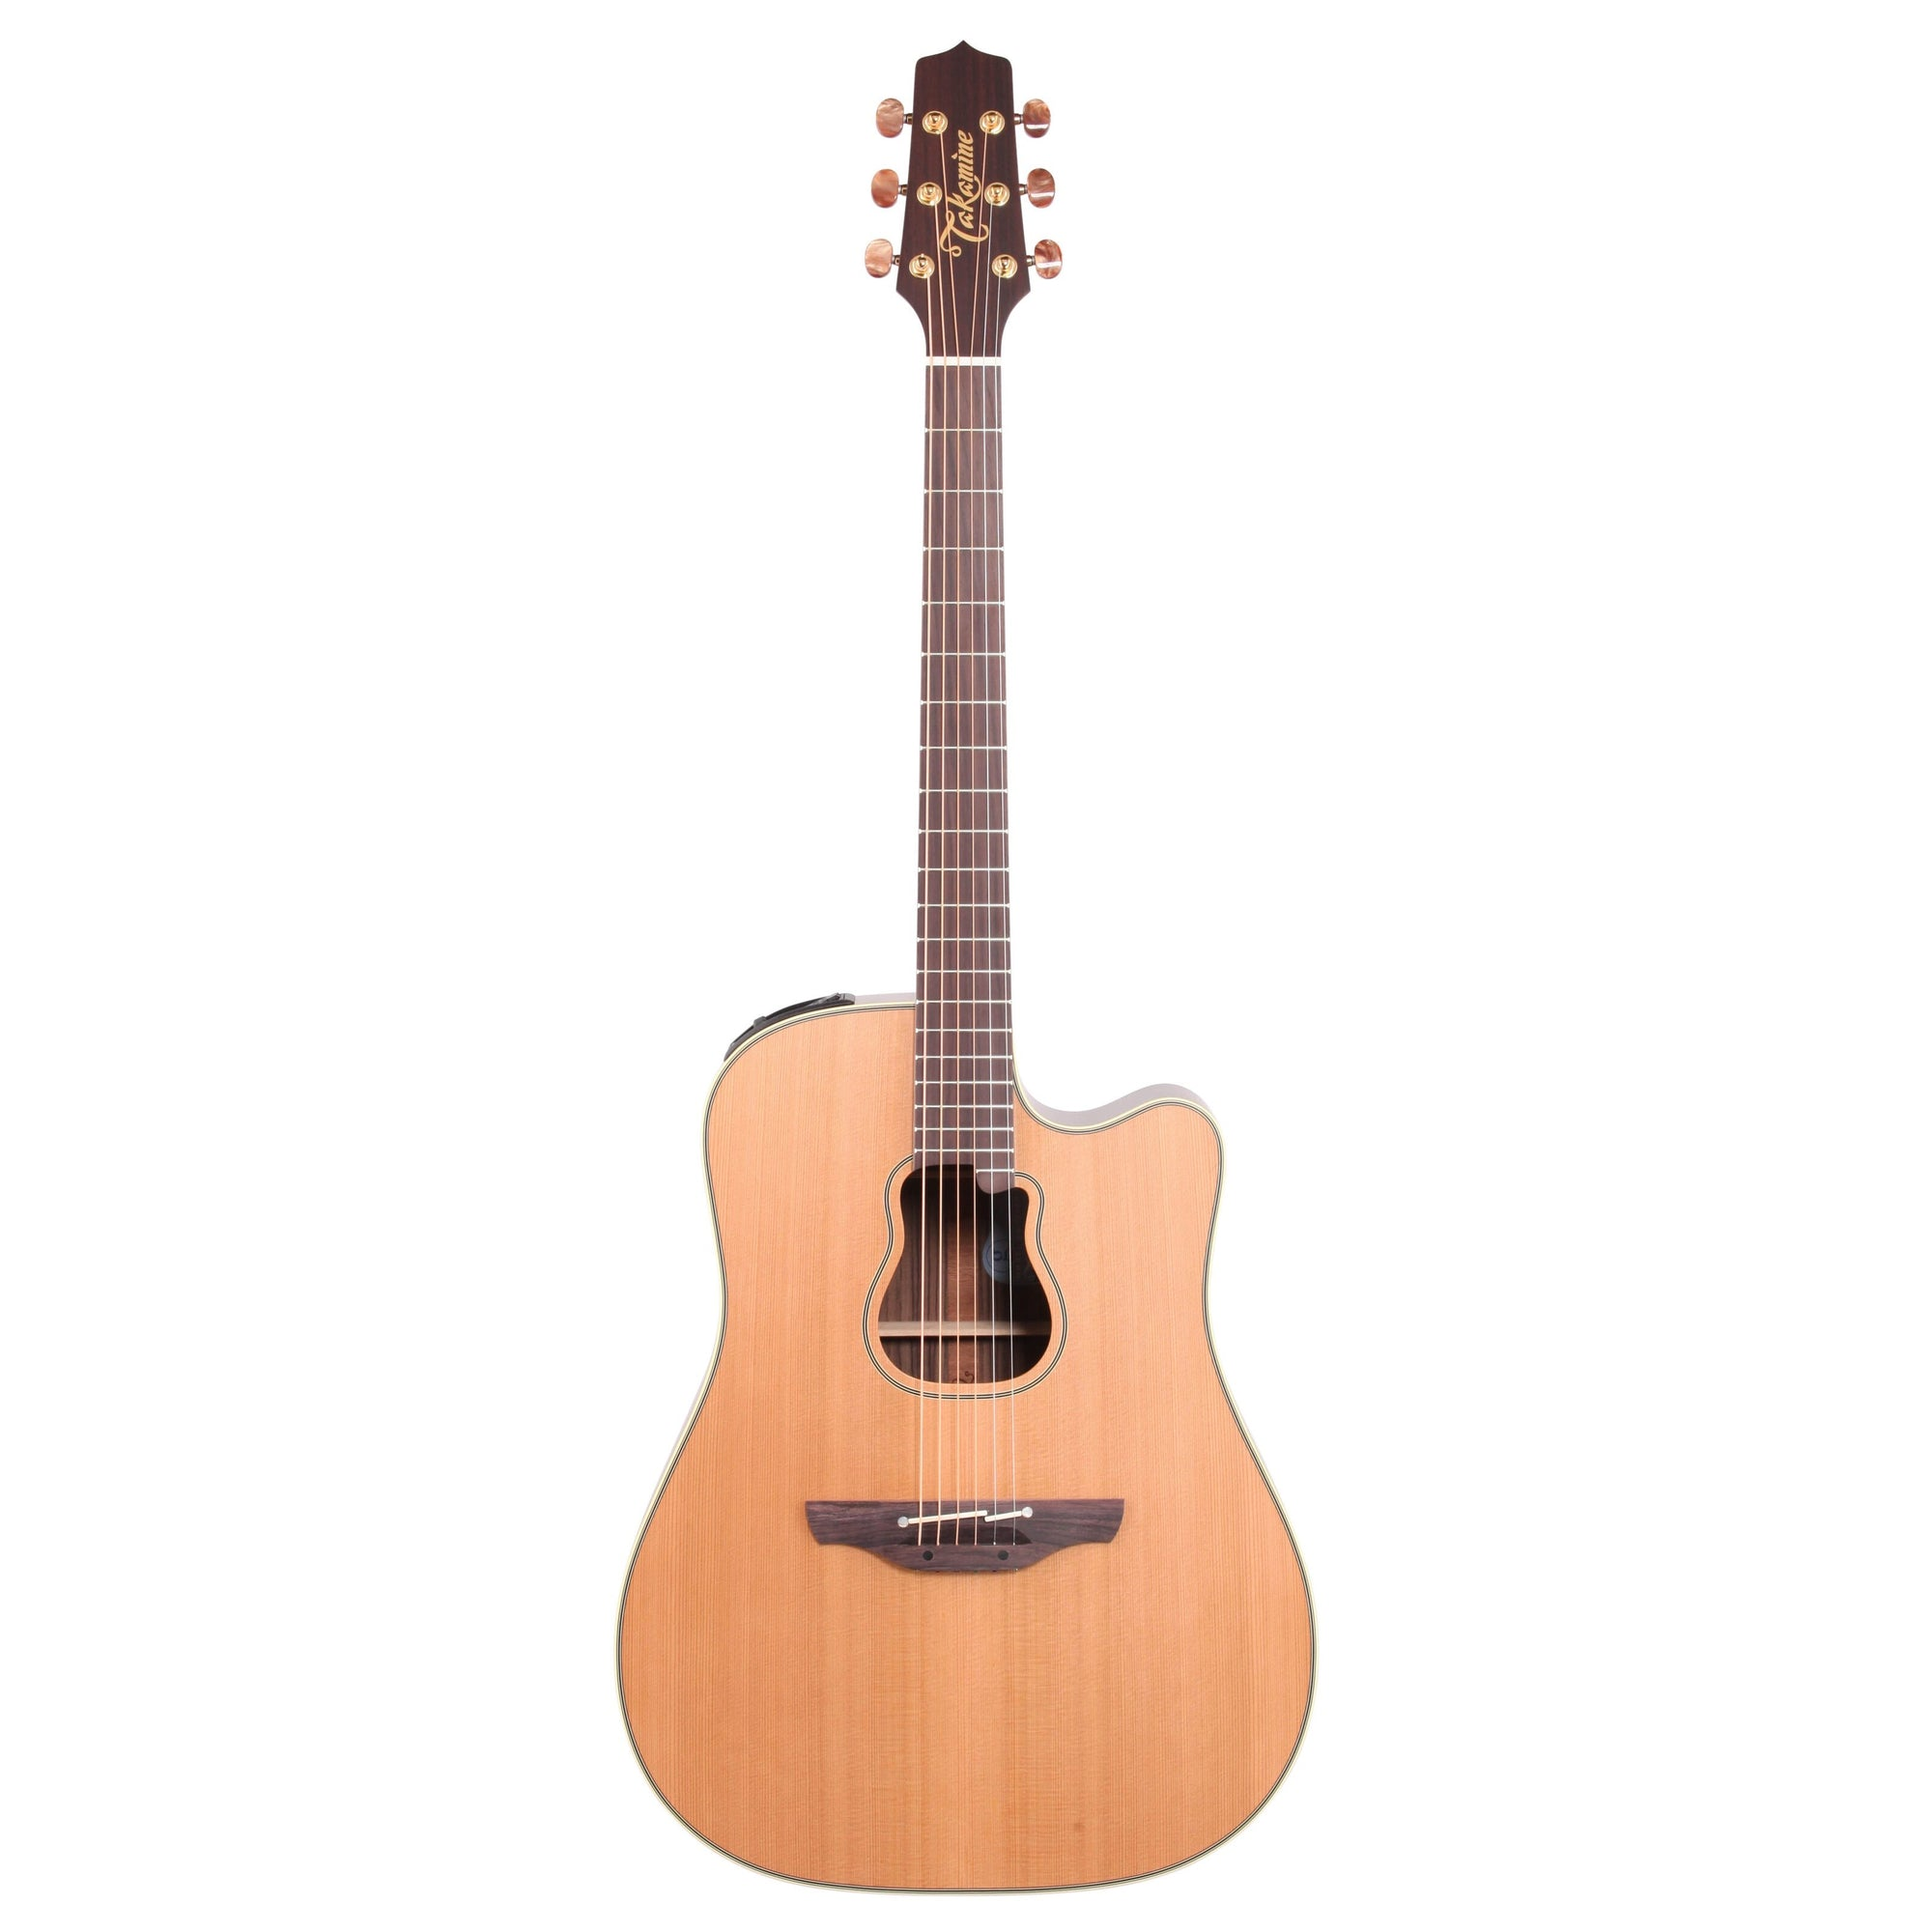 Takamine GB7C Garth Brooks Acoustic-Electric Guitar (with Case), Natural Satin